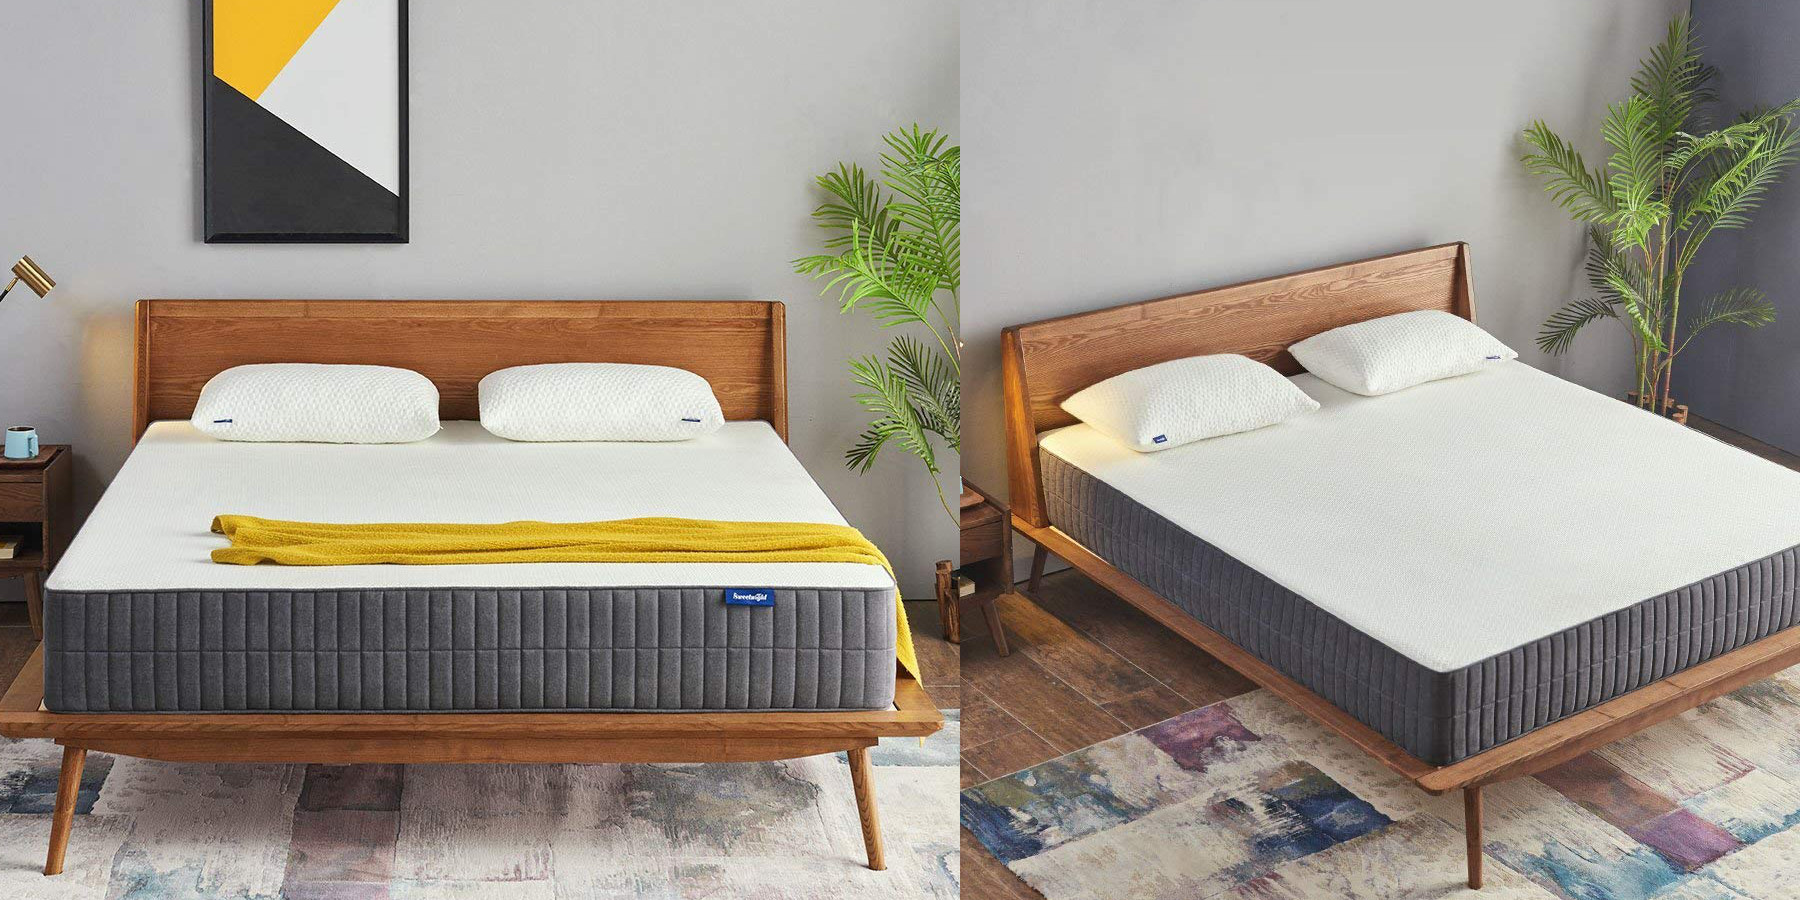 Treat yourself to a new mattress from $186 in today's Amazon Gold Box (up to 75% off)